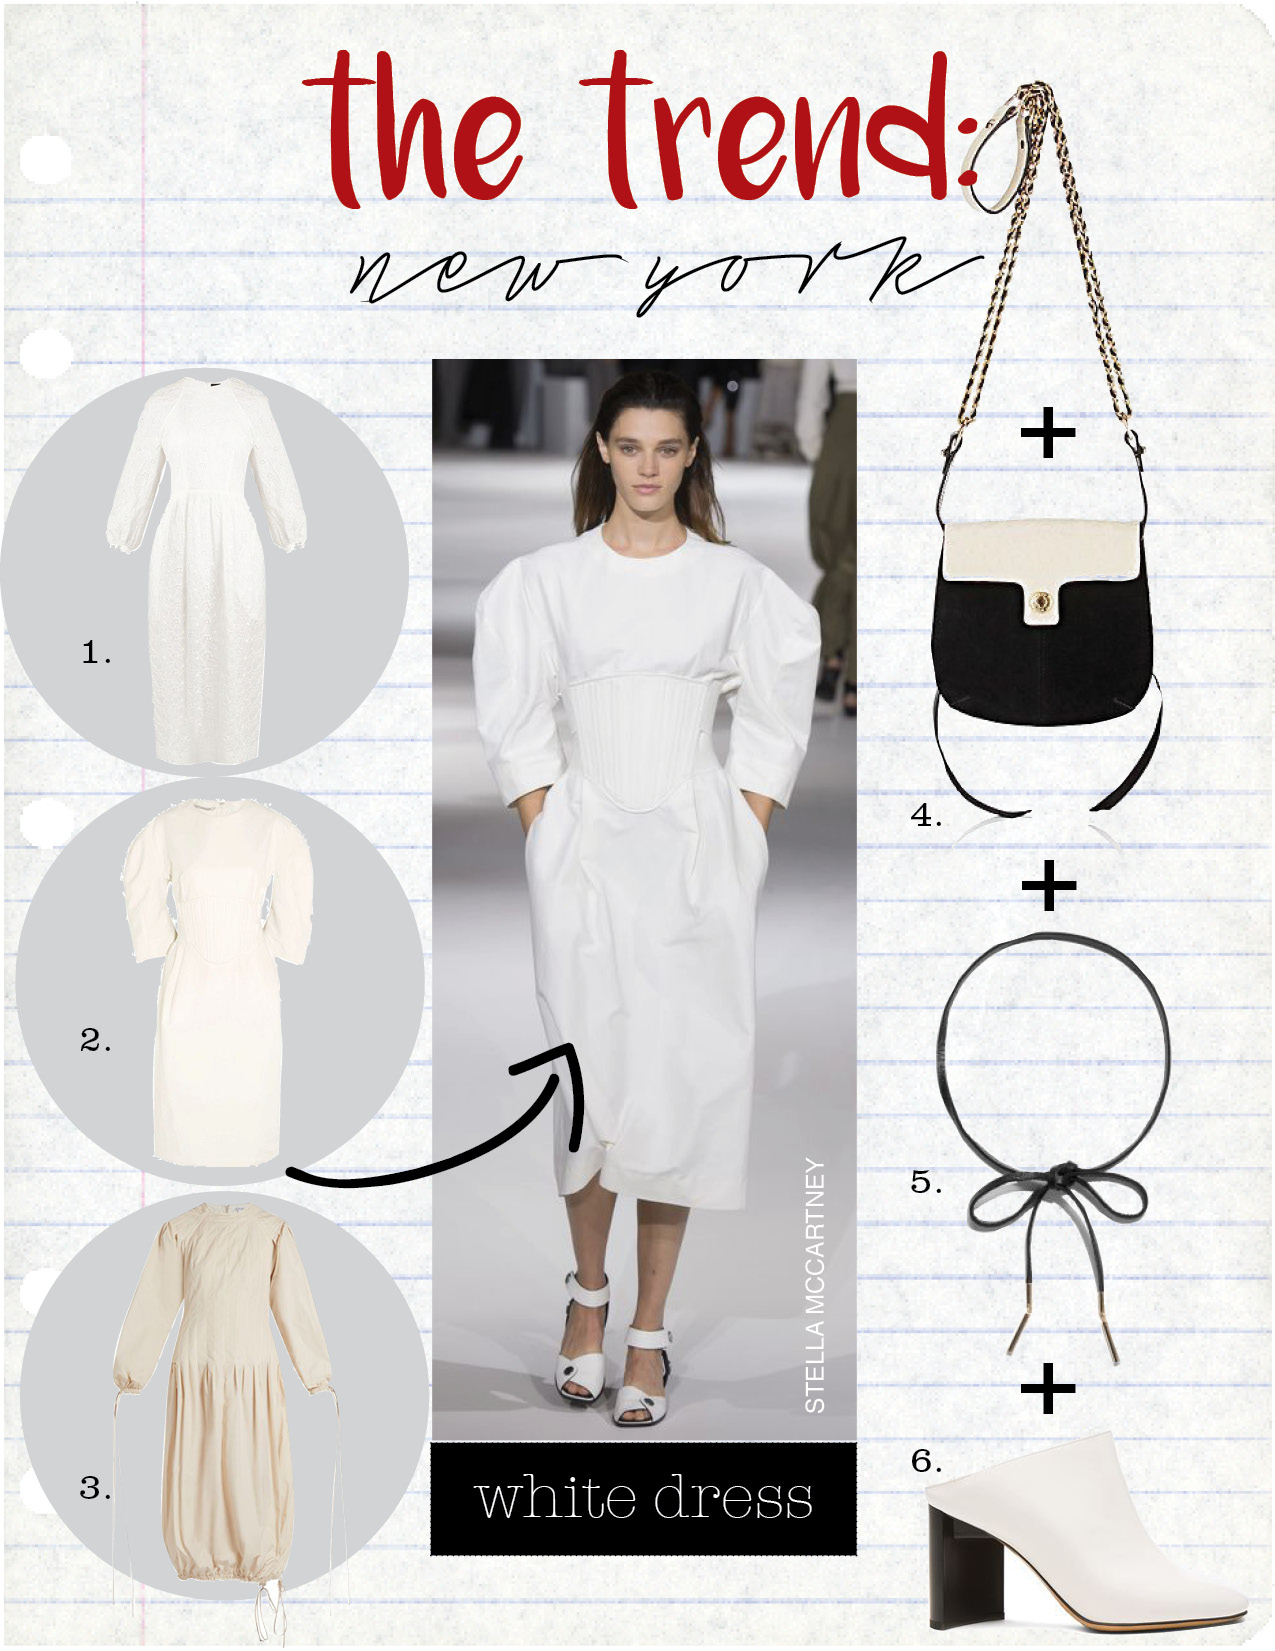 1. simone rocha broderie-anglaise draped-back dress, $1388,  matchesfashion.com  2. stella maccartney paneled poplin dress, $1245,  net-a-porter.com  3. loewe drawstring cuffs and hem midi dress, $2093,  matchesfashion.com  4. maison mayle andalou shoulder bag, $595,  barneys.com  5. and other stories leather tie necklace, $25,  stories.com  6. maison margiela leather mules, $890,  fwrd.com